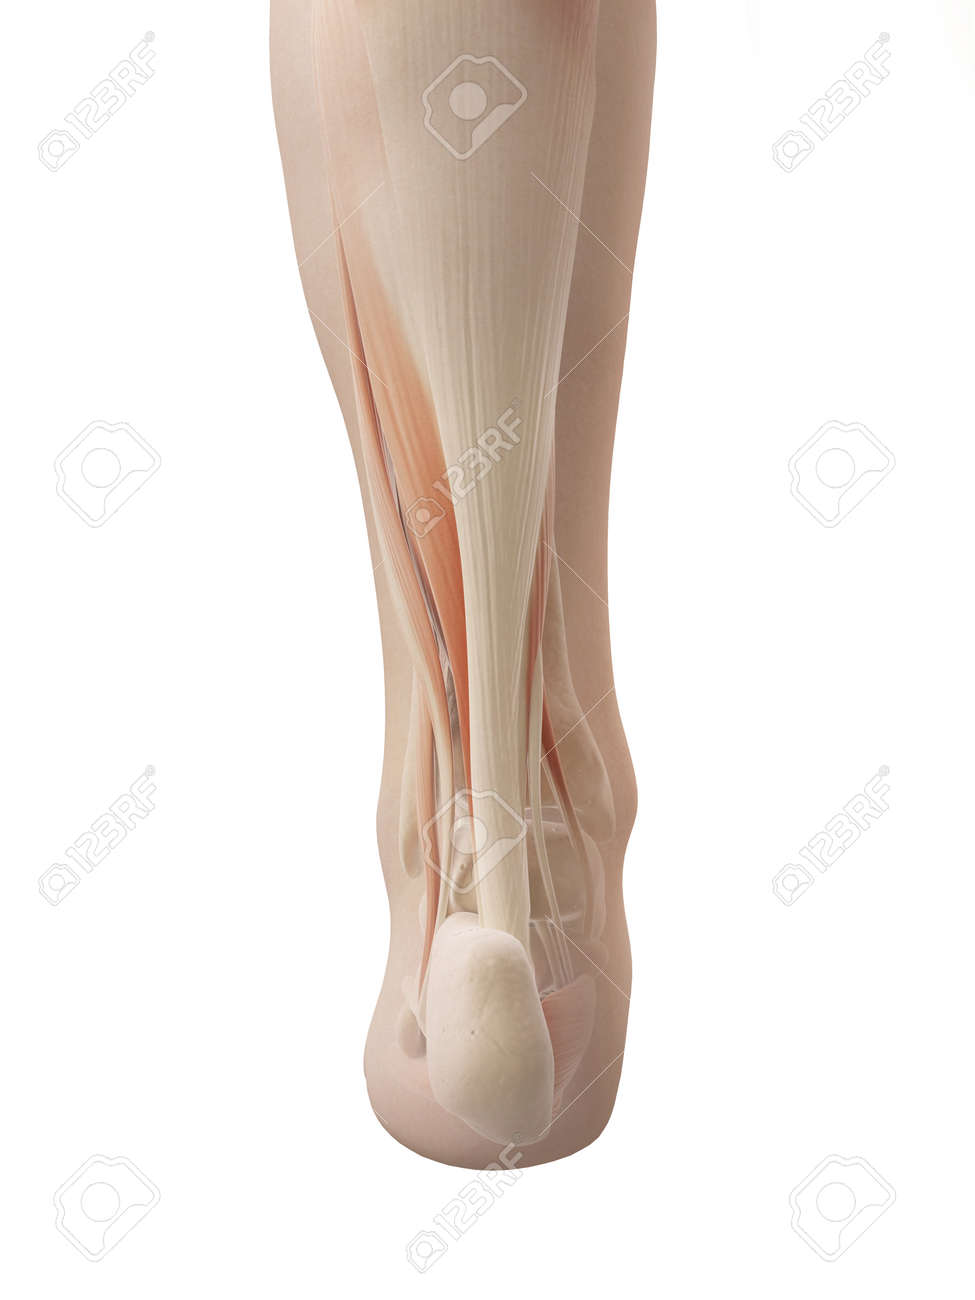 Muscular Foot Anatomy Stock Photo, Picture And Royalty Free Image ...